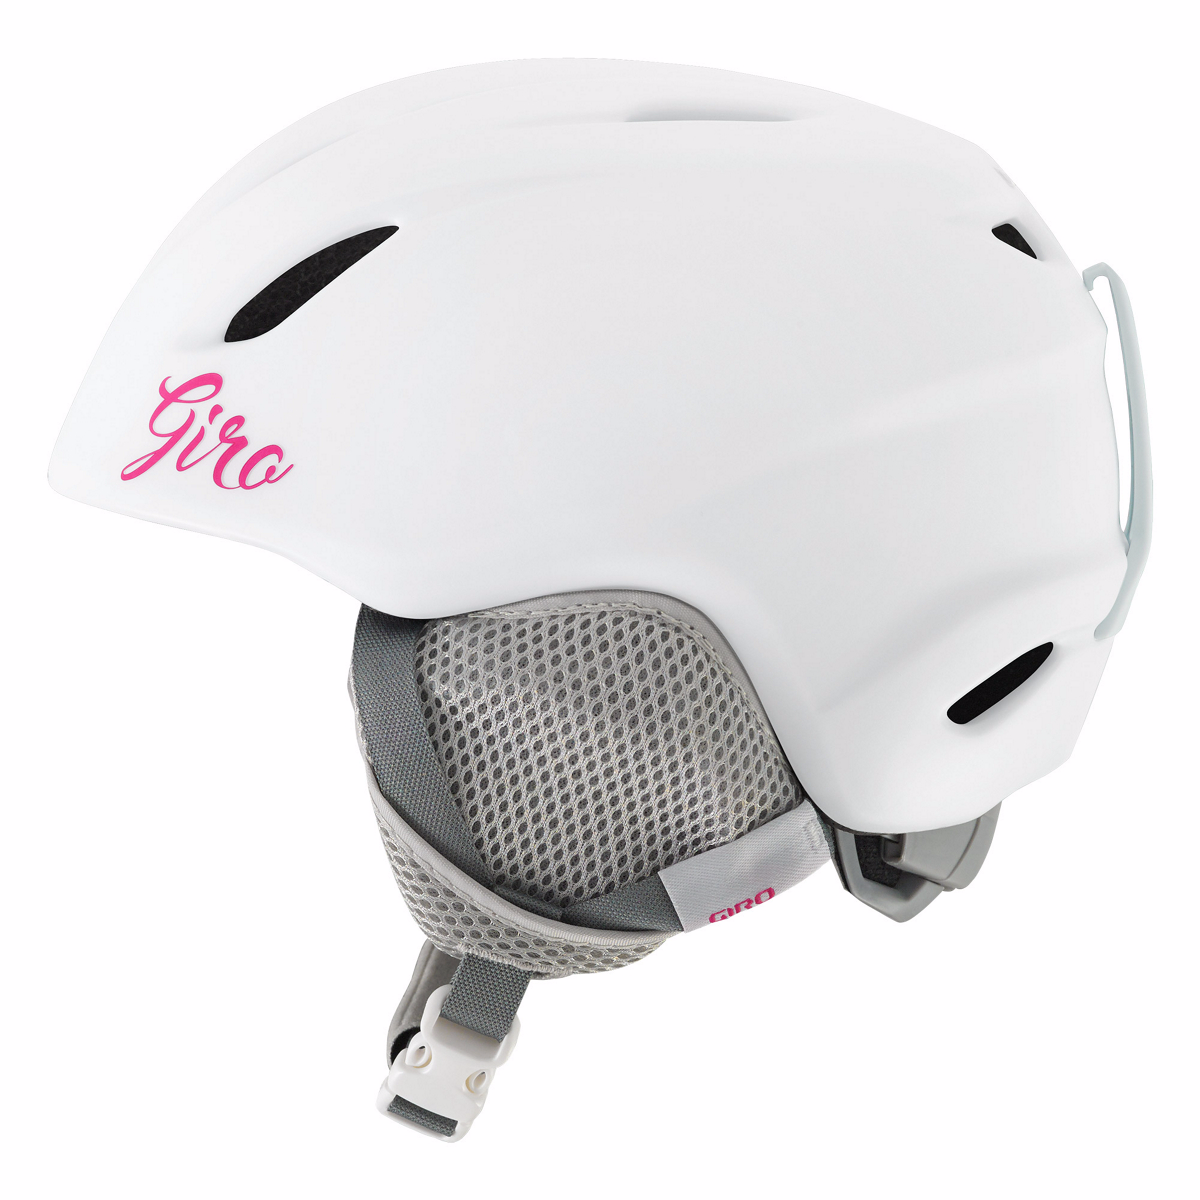 2018/19 Giro Launch Mat White